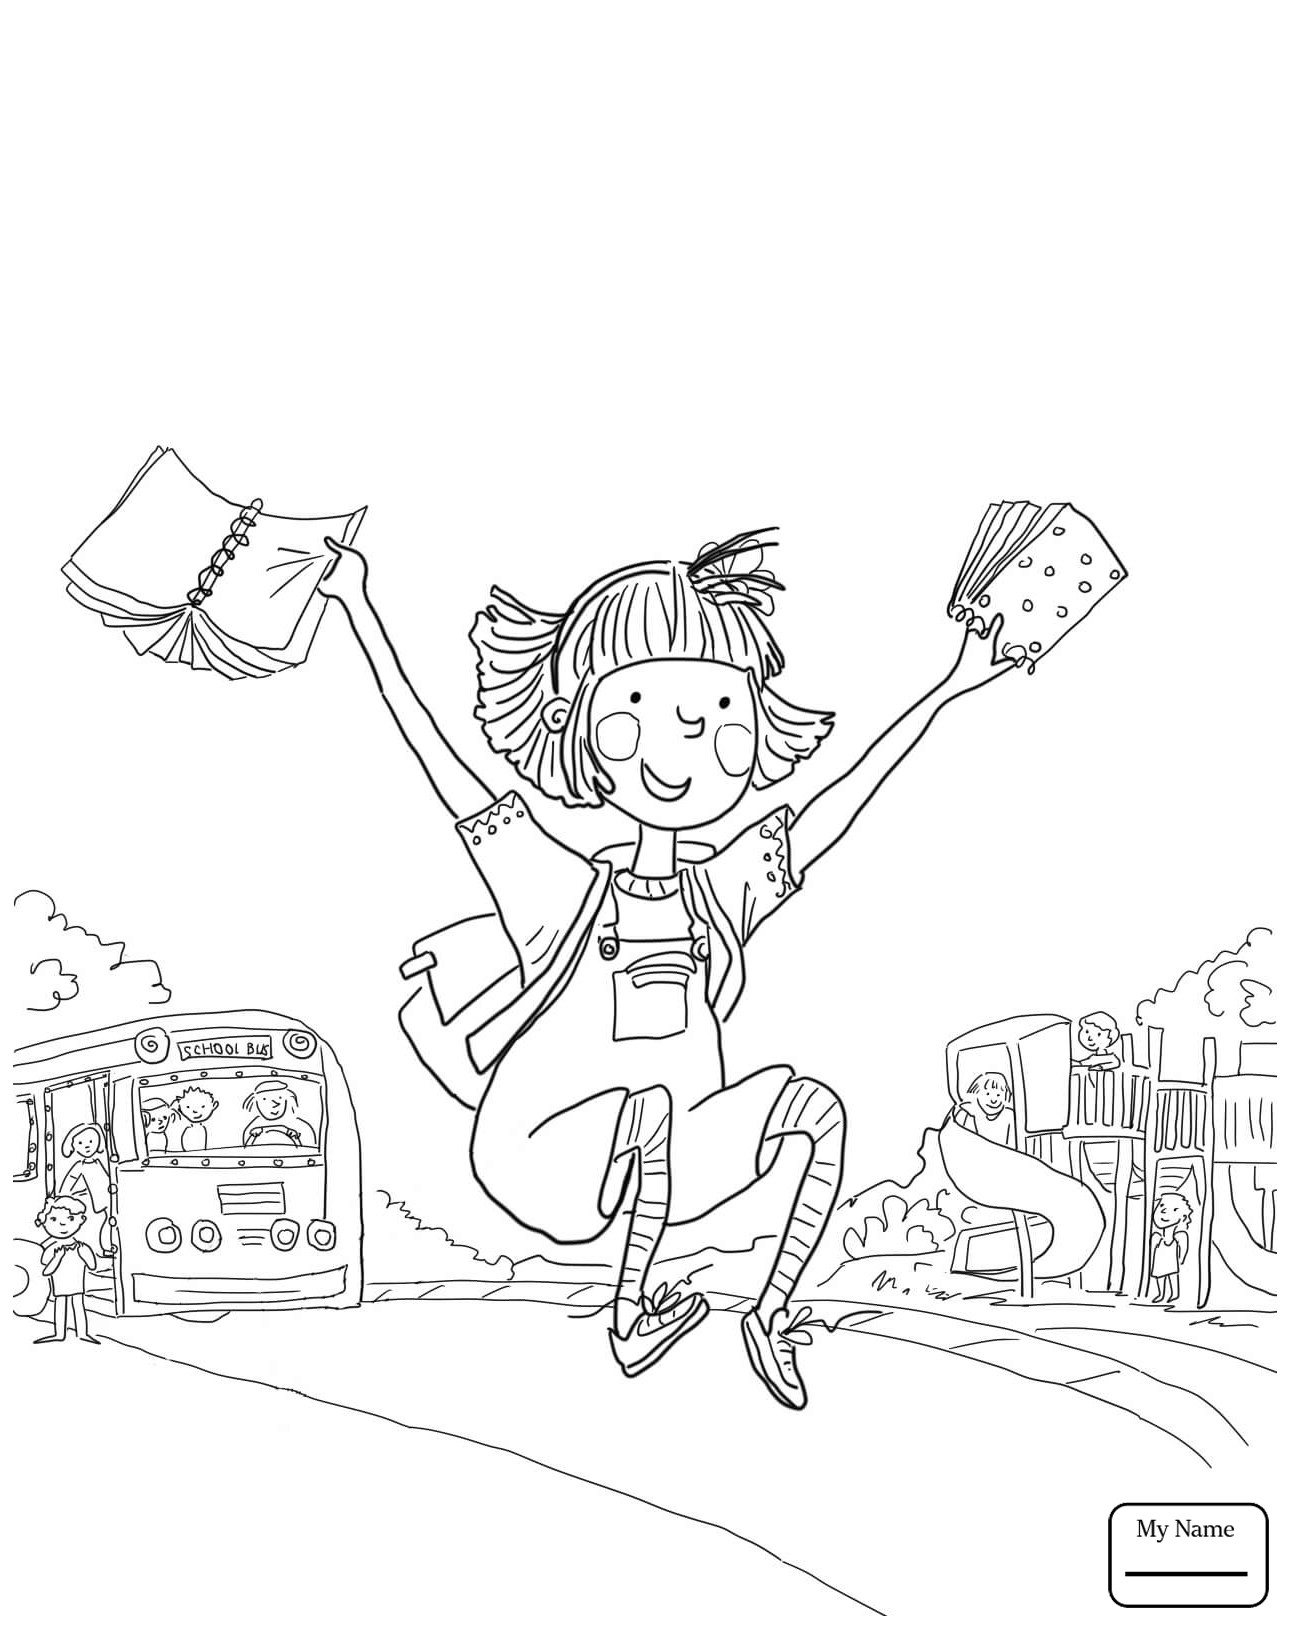 Amelia Bedelia Coloring Page At Getdrawings